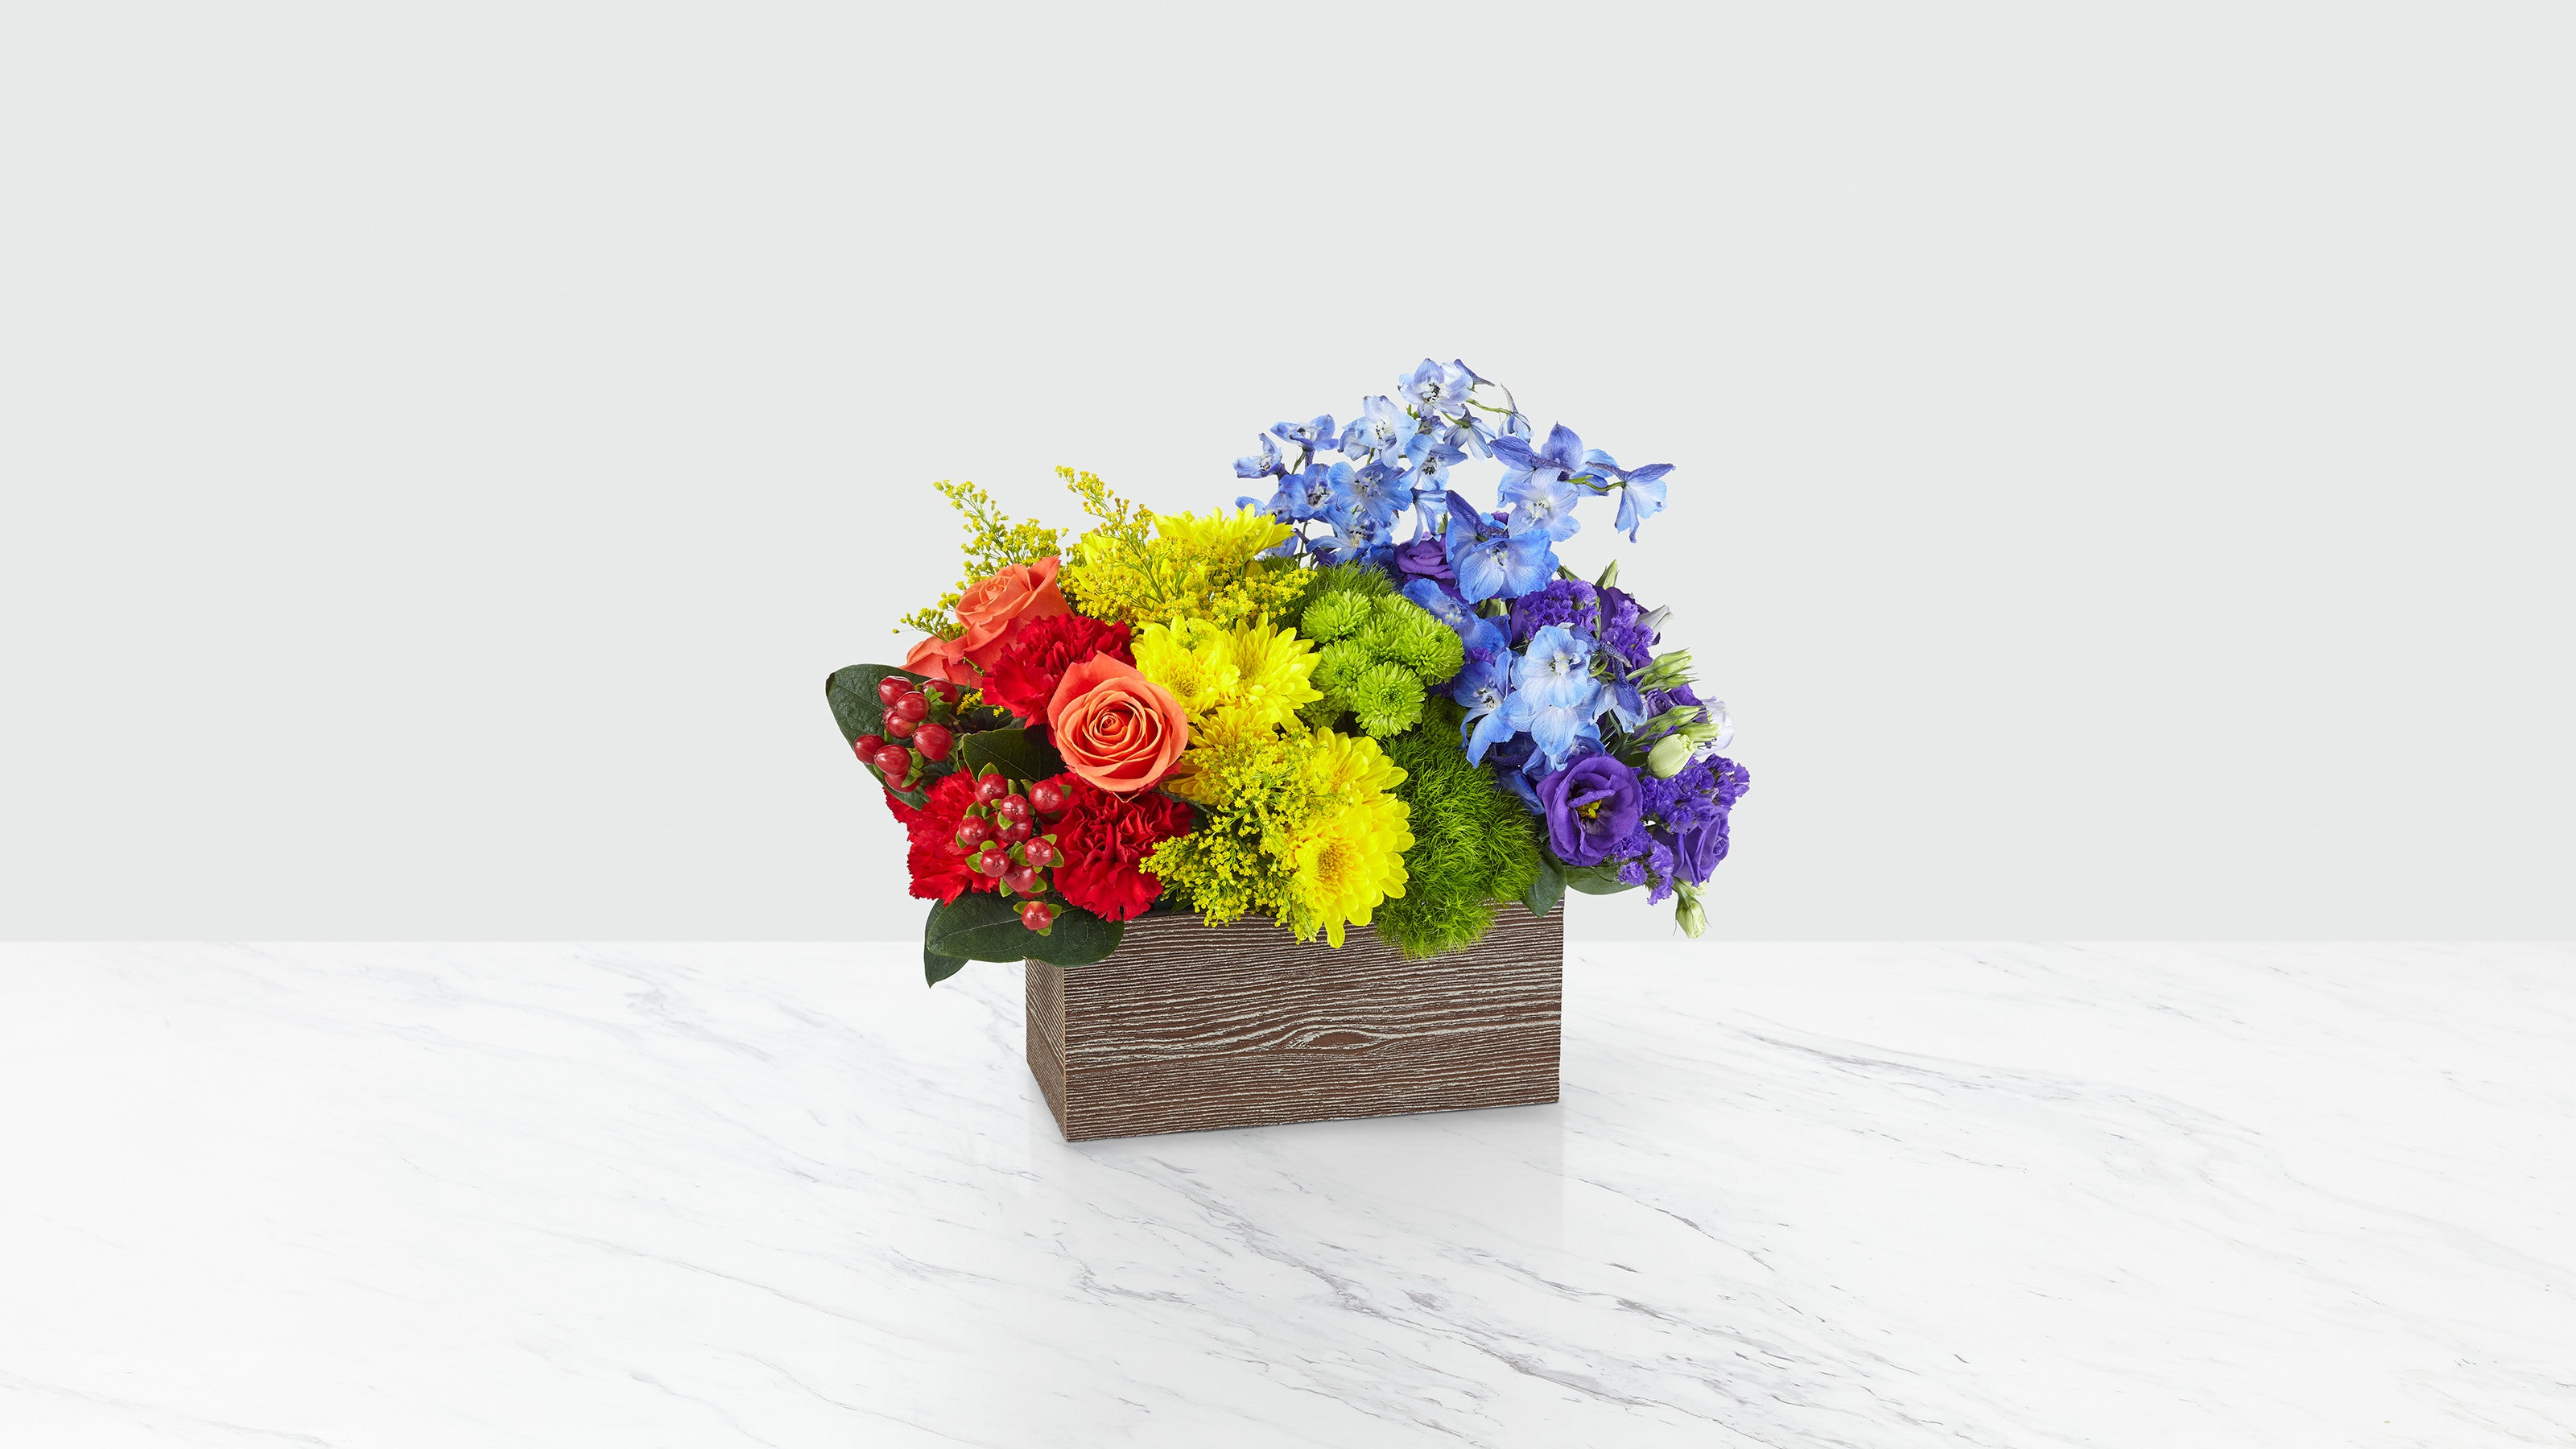 Back to School Gifts, Flowers, Plants and Treats - FTD com